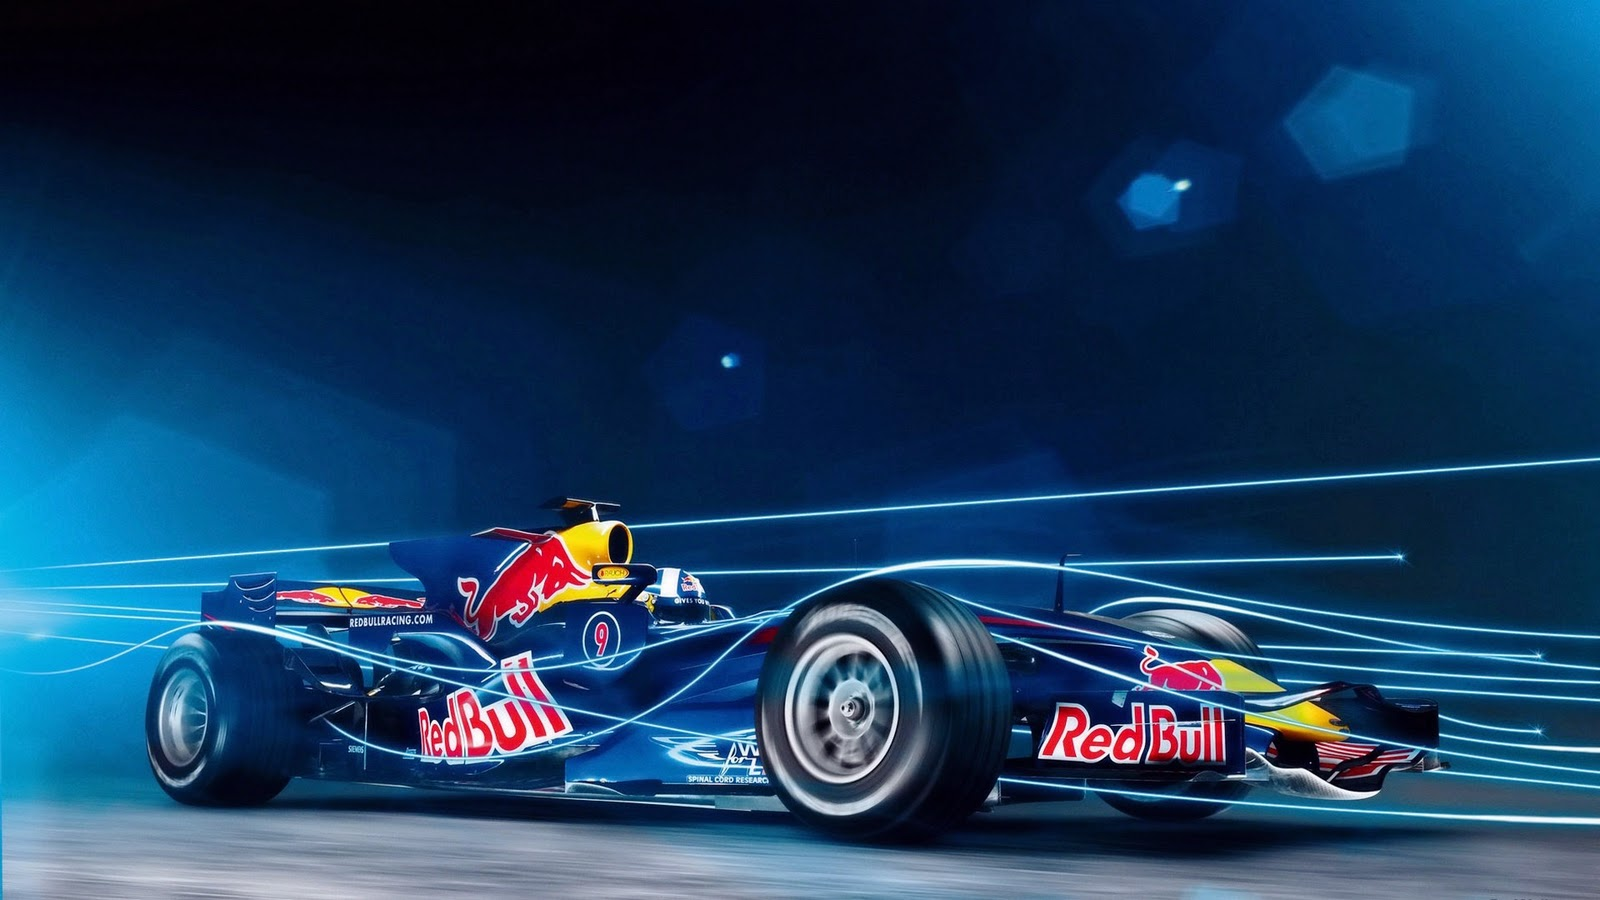 http://4.bp.blogspot.com/-ZTEhPm0Sw8c/TnjCG8m6gRI/AAAAAAAABM0/-O9IJv4m0AE/s1600/Red_Bull_F1_Car_HD_Wallpaper_Art_Blue_Lights_HD_Wallpaper_Vvallpaper.Net.jpg